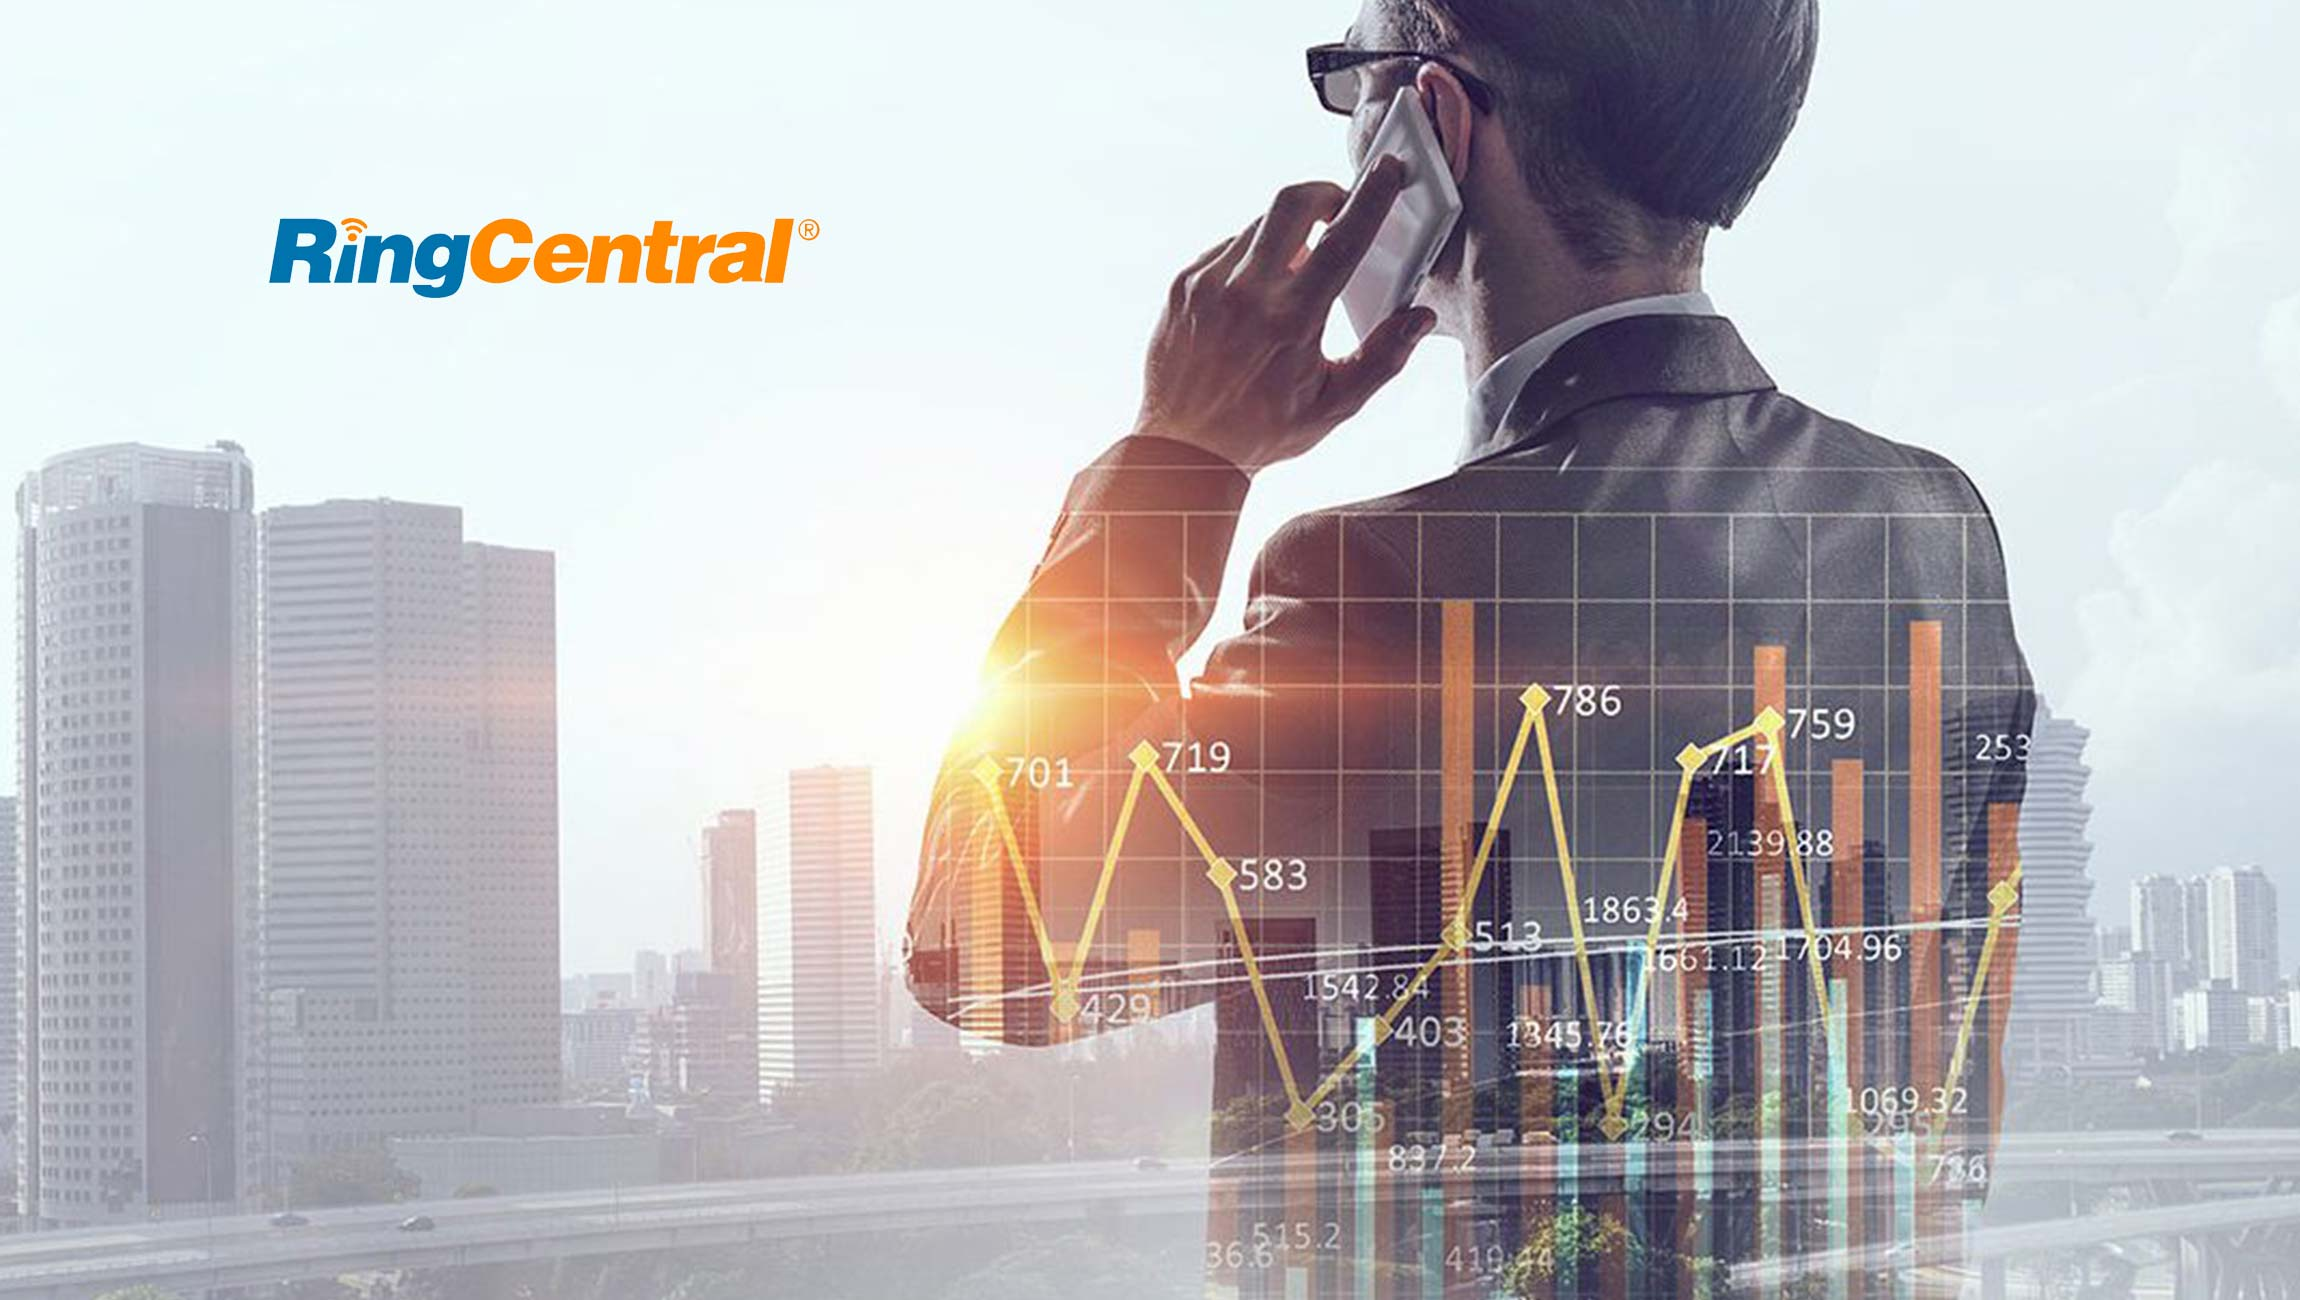 RingCentral Ranked Highest in Five out of Five Use Cases in the 2020 Gartner Critical Capabilities for Unified Communications as a Service Worldwide Report 6